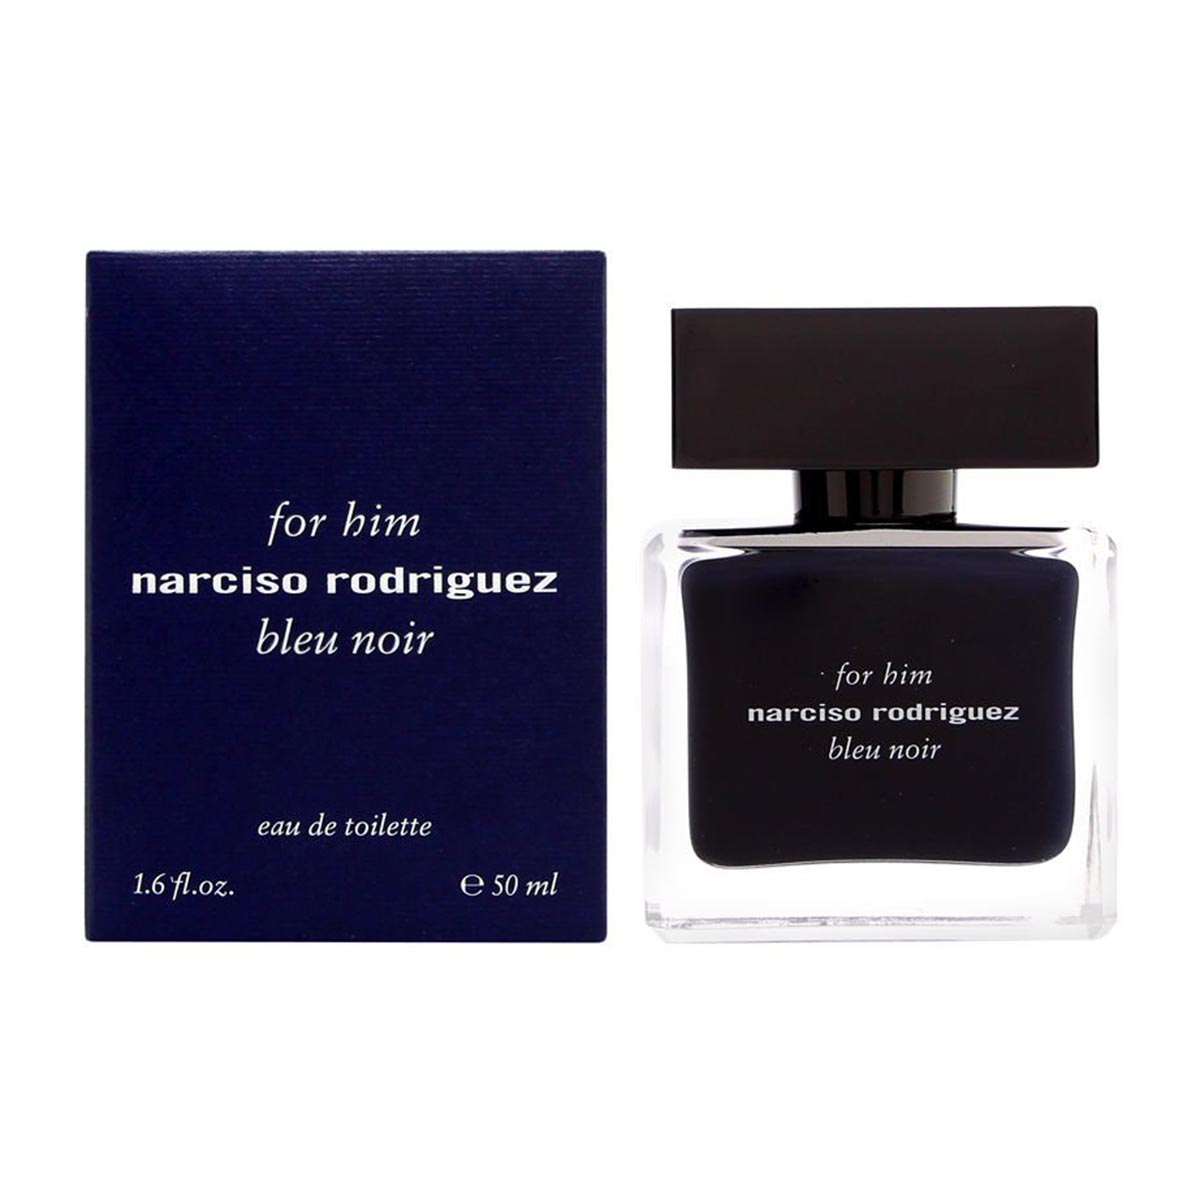 Narciso rodriguez for him bleu noir eai de toilette 50ml vaporizador